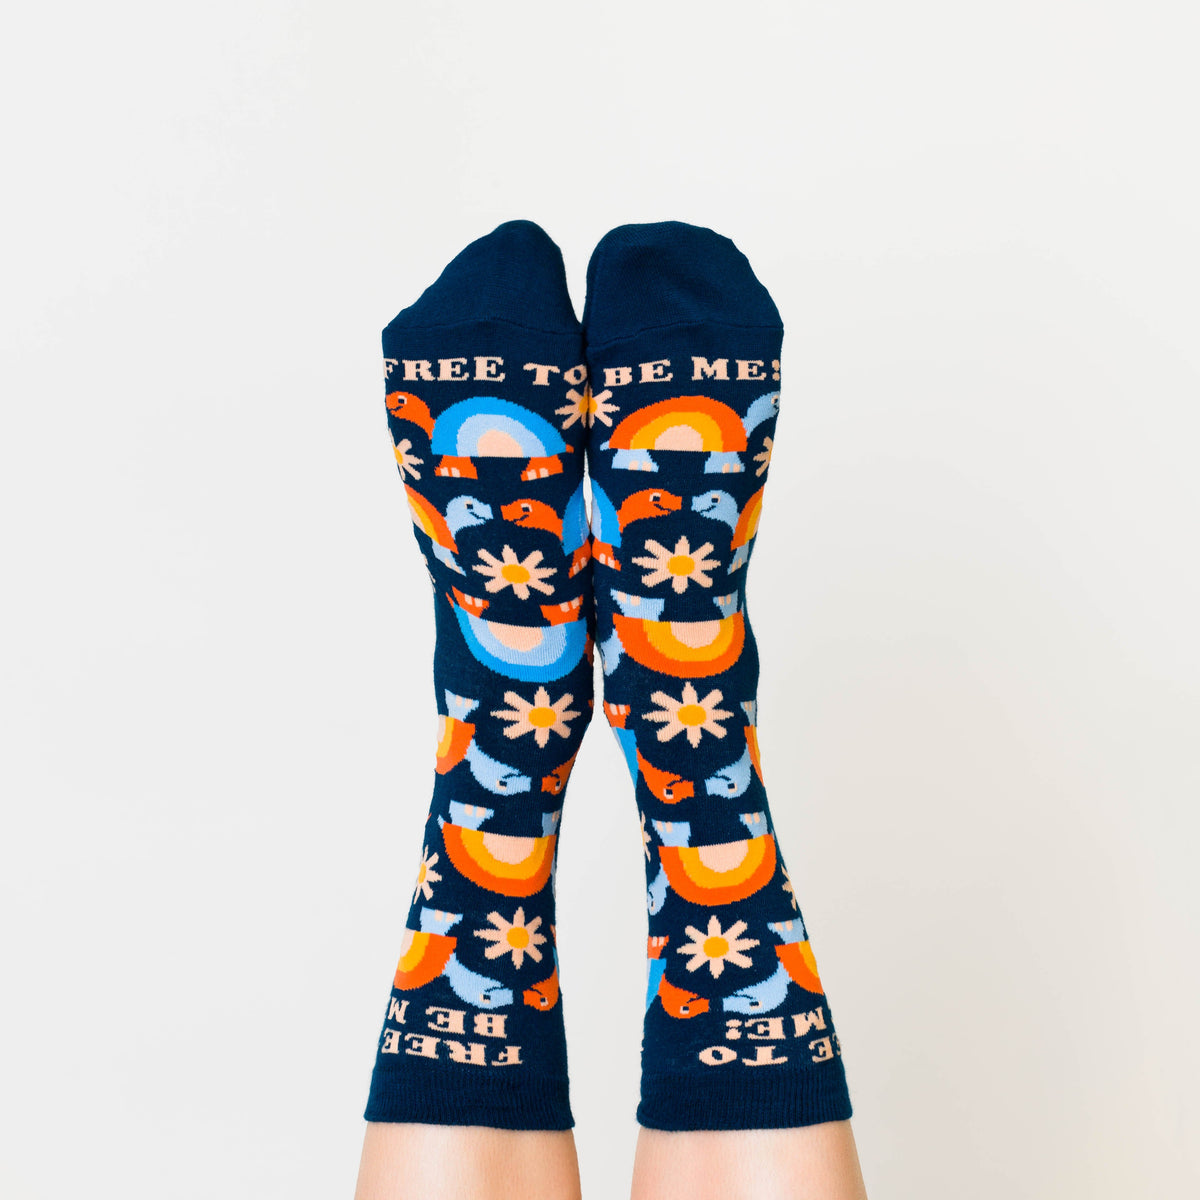 Free To Be Me Crew Socks - Womens